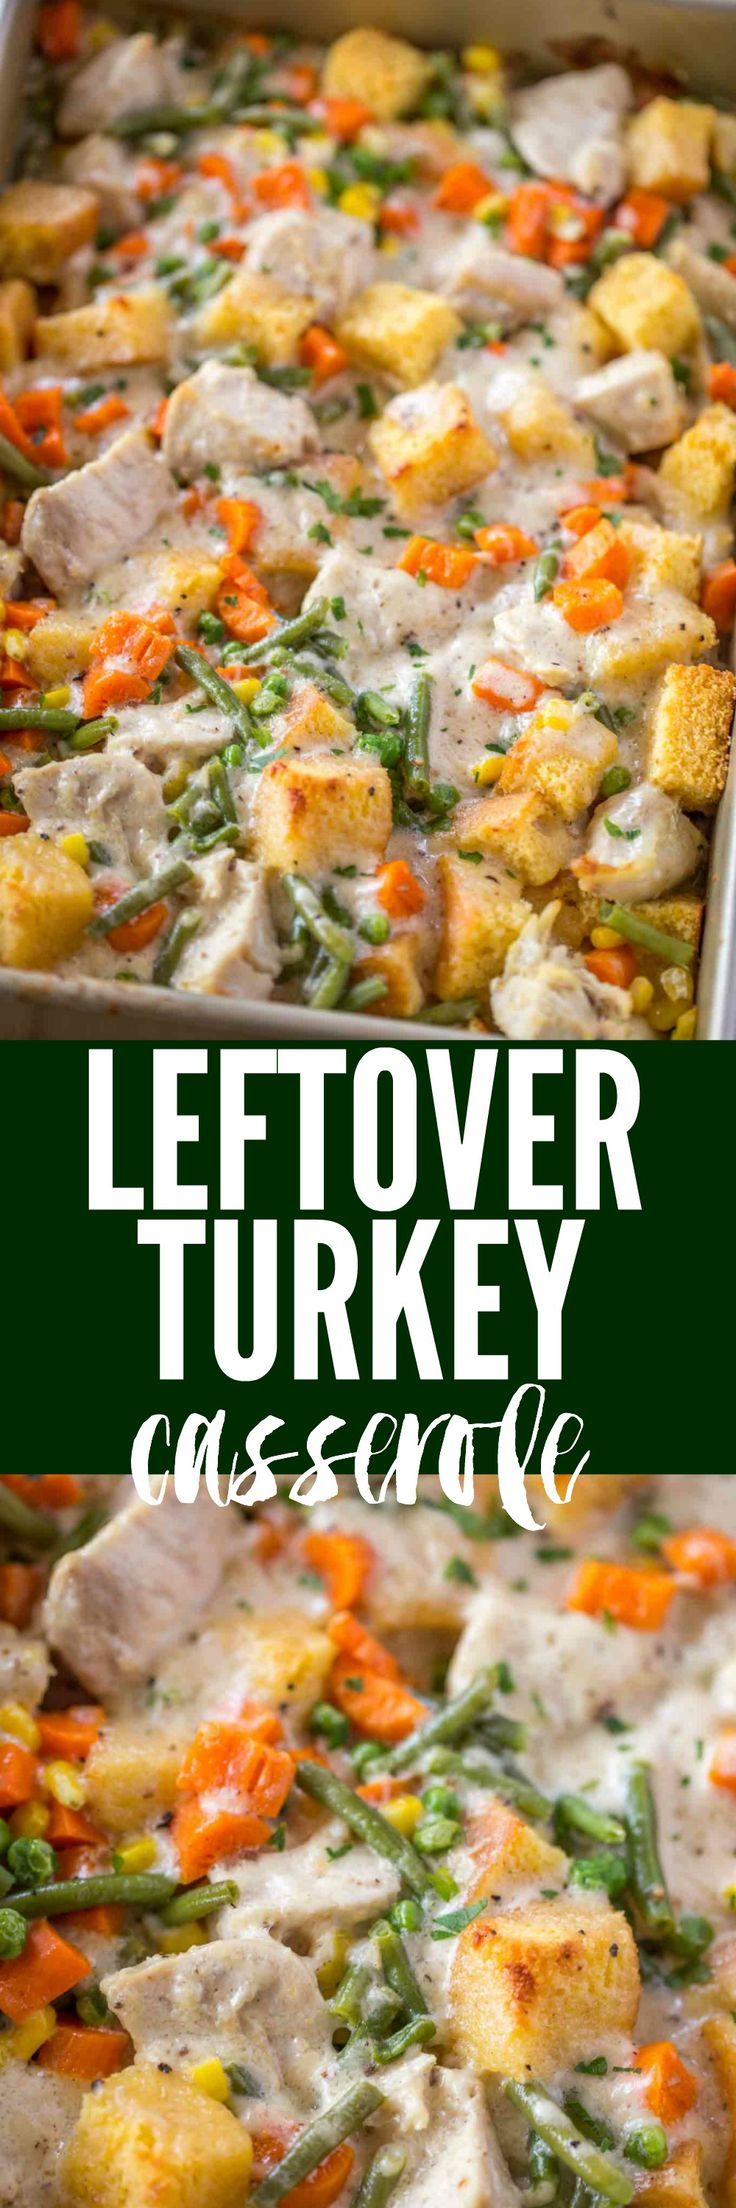 Leftover Turkey Casserole with an easy creamy cheddar gravy, cornbread and vegetables will make you wish you could eat this casserole for thanksgiving dinner!